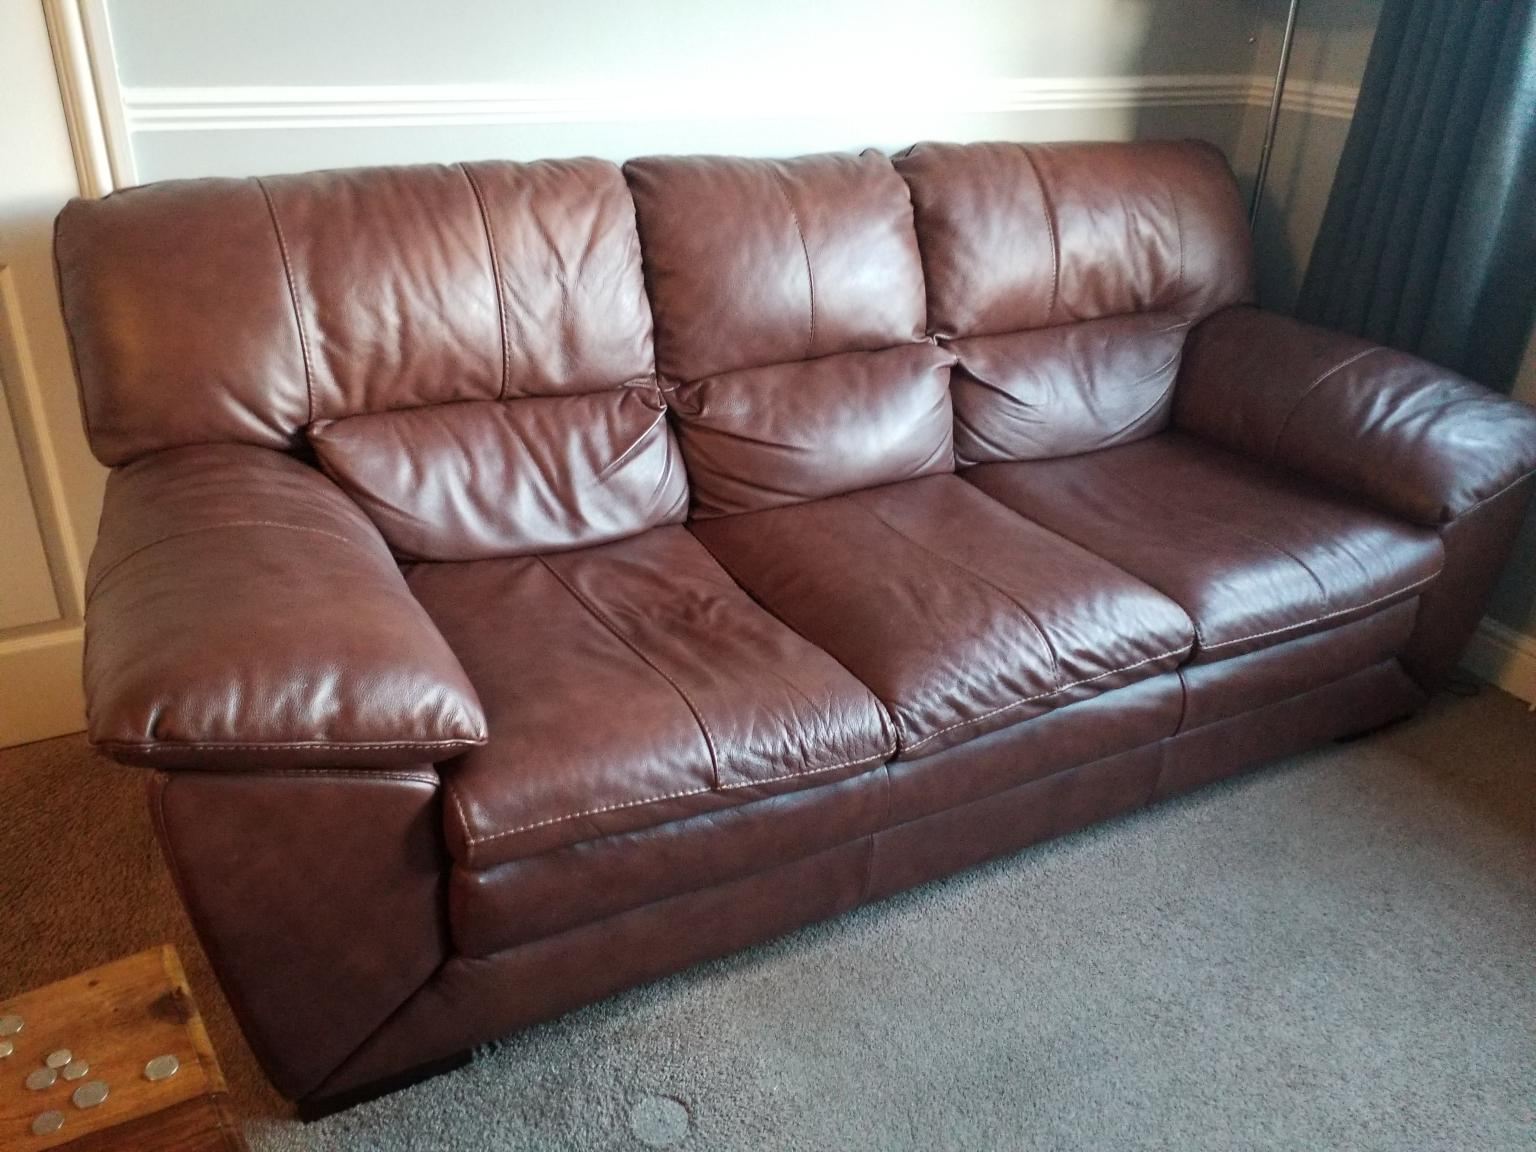 Leather Sofa Dfs In Ol7 Tameside For 175 00 For Sale Shpock